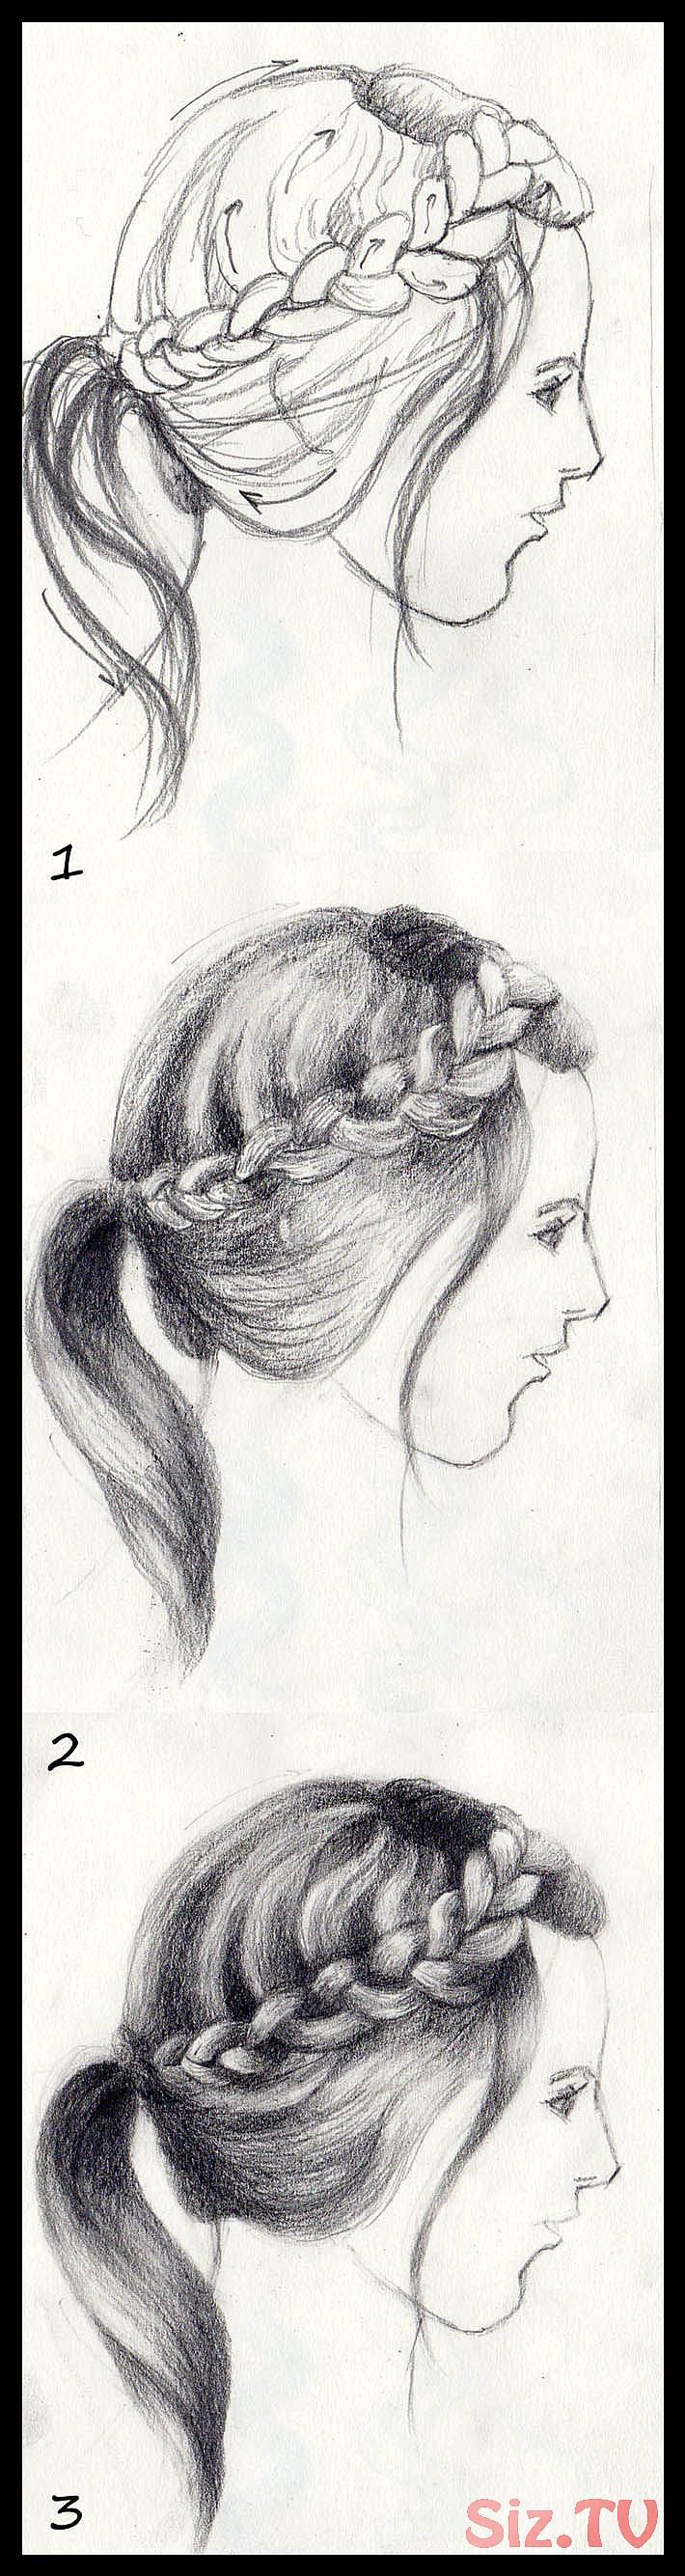 The Artist s Formula for Drawing Any Kind of Hairstyle The Artist s Formula for Drawing Any Kind of Hairstyle Gayl ortiz Save Images Gayl ortiz Waves braids buns whatever...